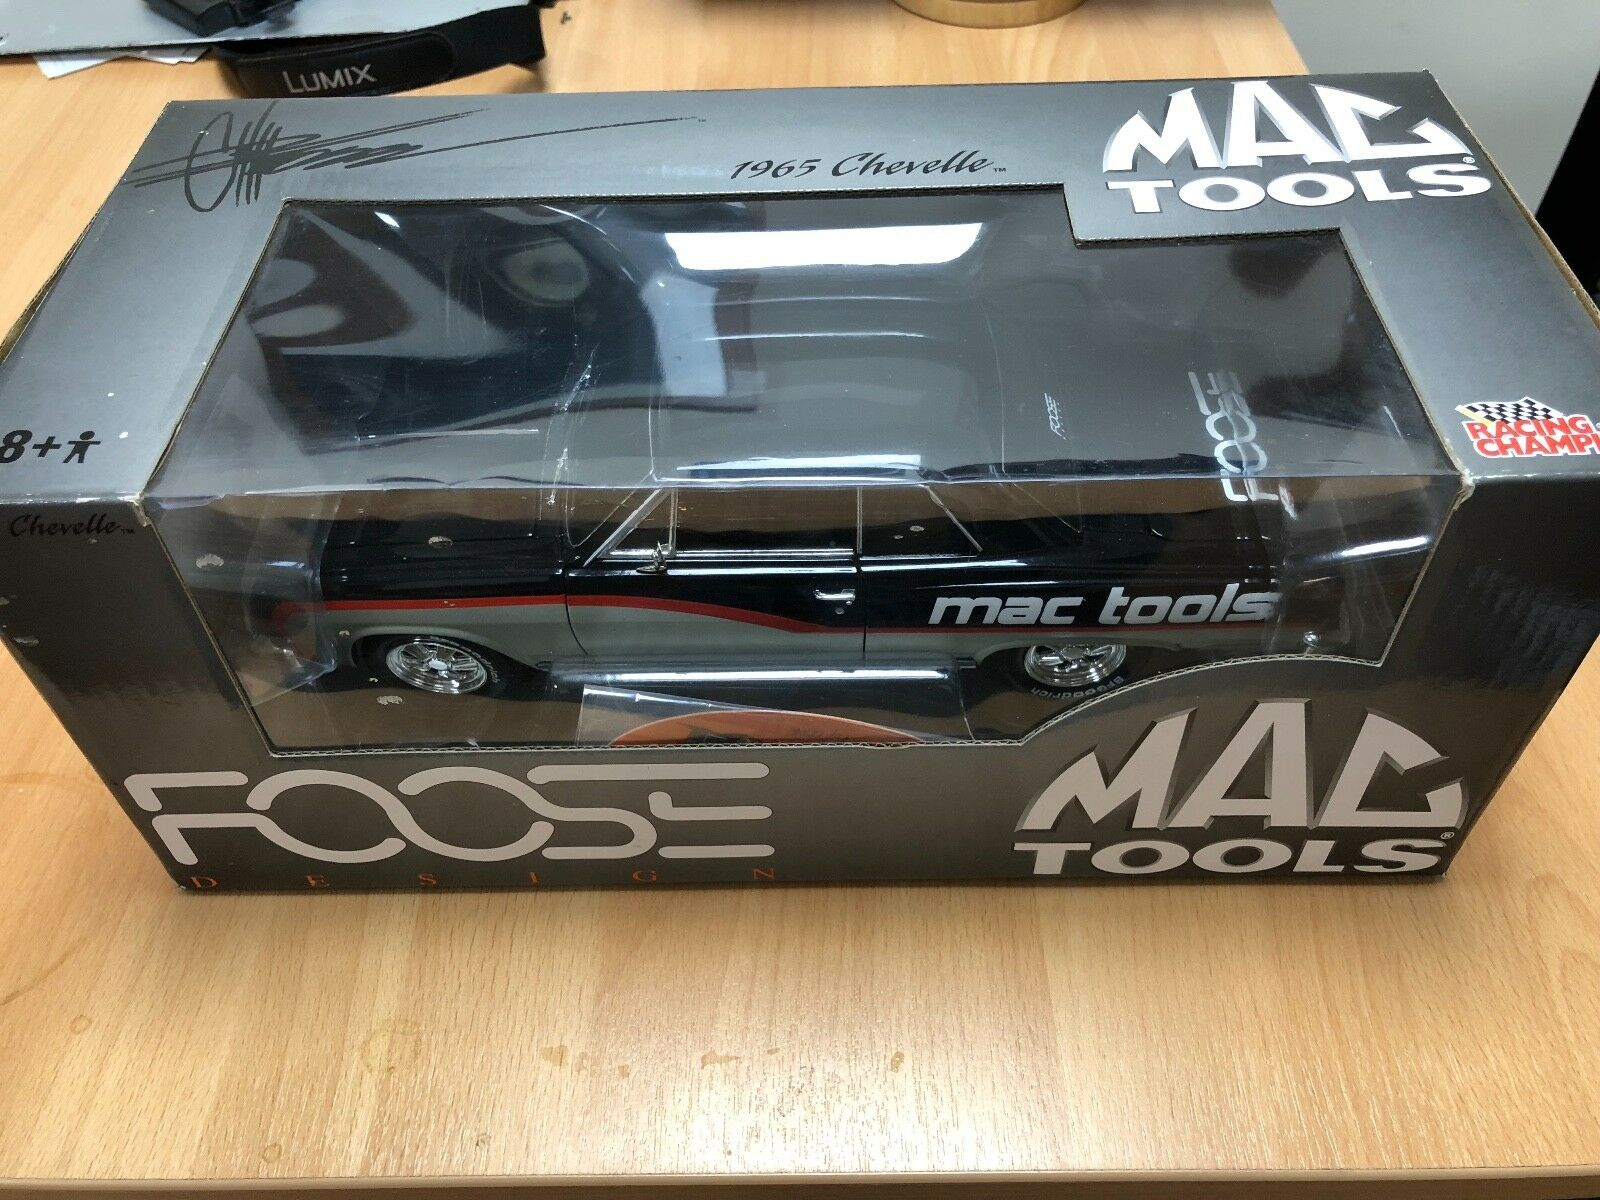 Mac Tools Foose Design 1965 Chevelle Scale Model